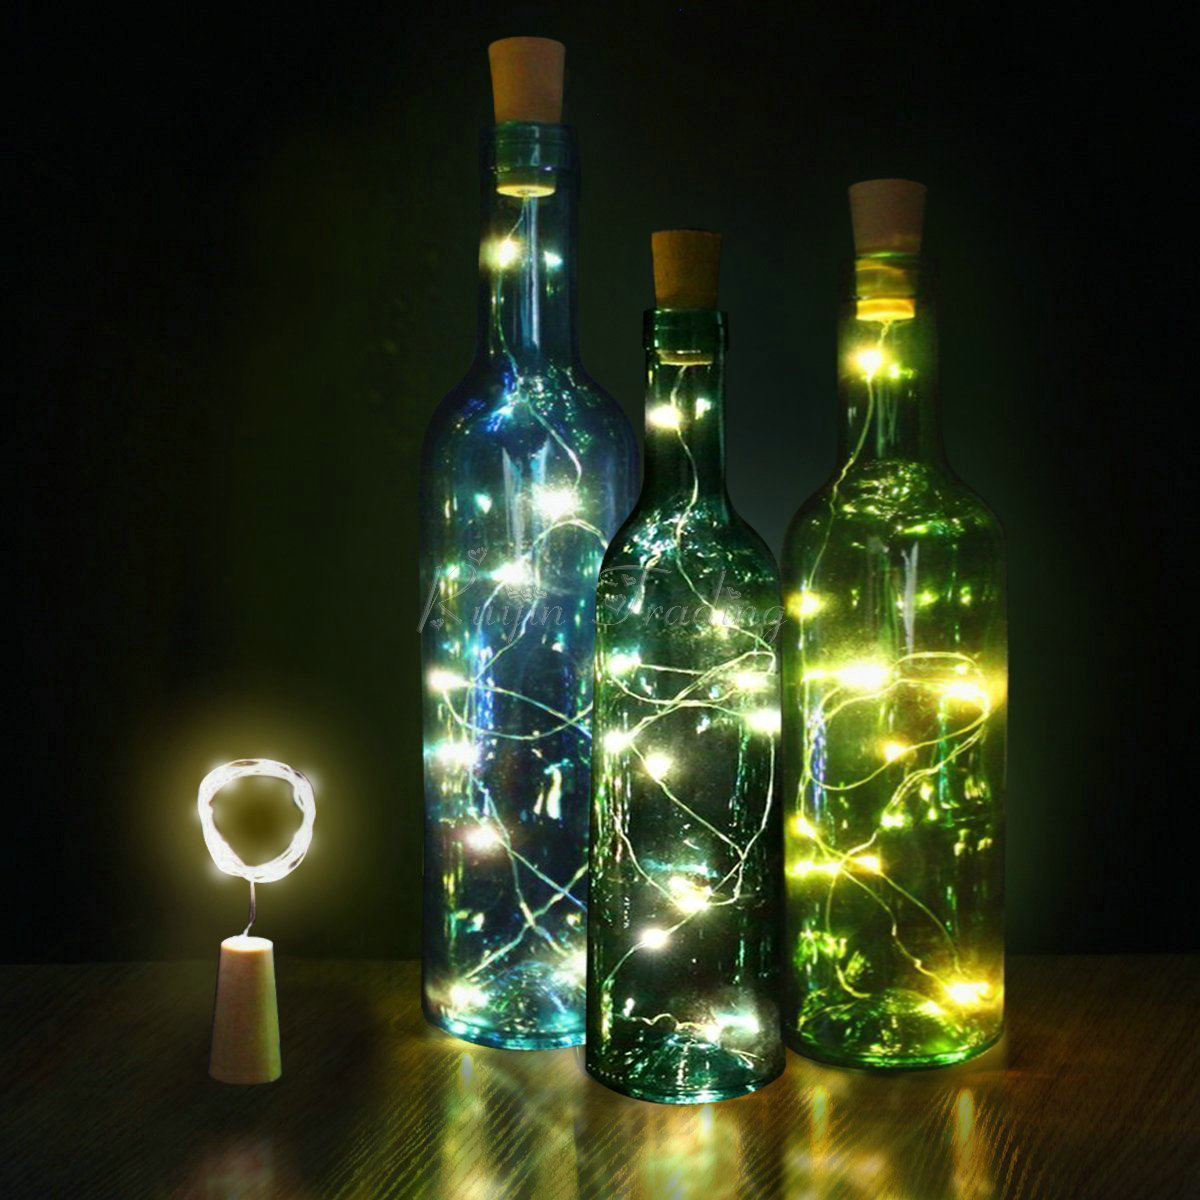 15 20 LED DIY Cork Light String Wine Bottle Stopper Copper Fairy Metal Strip Wire Outdoor Holiday Christmas Party Decoration